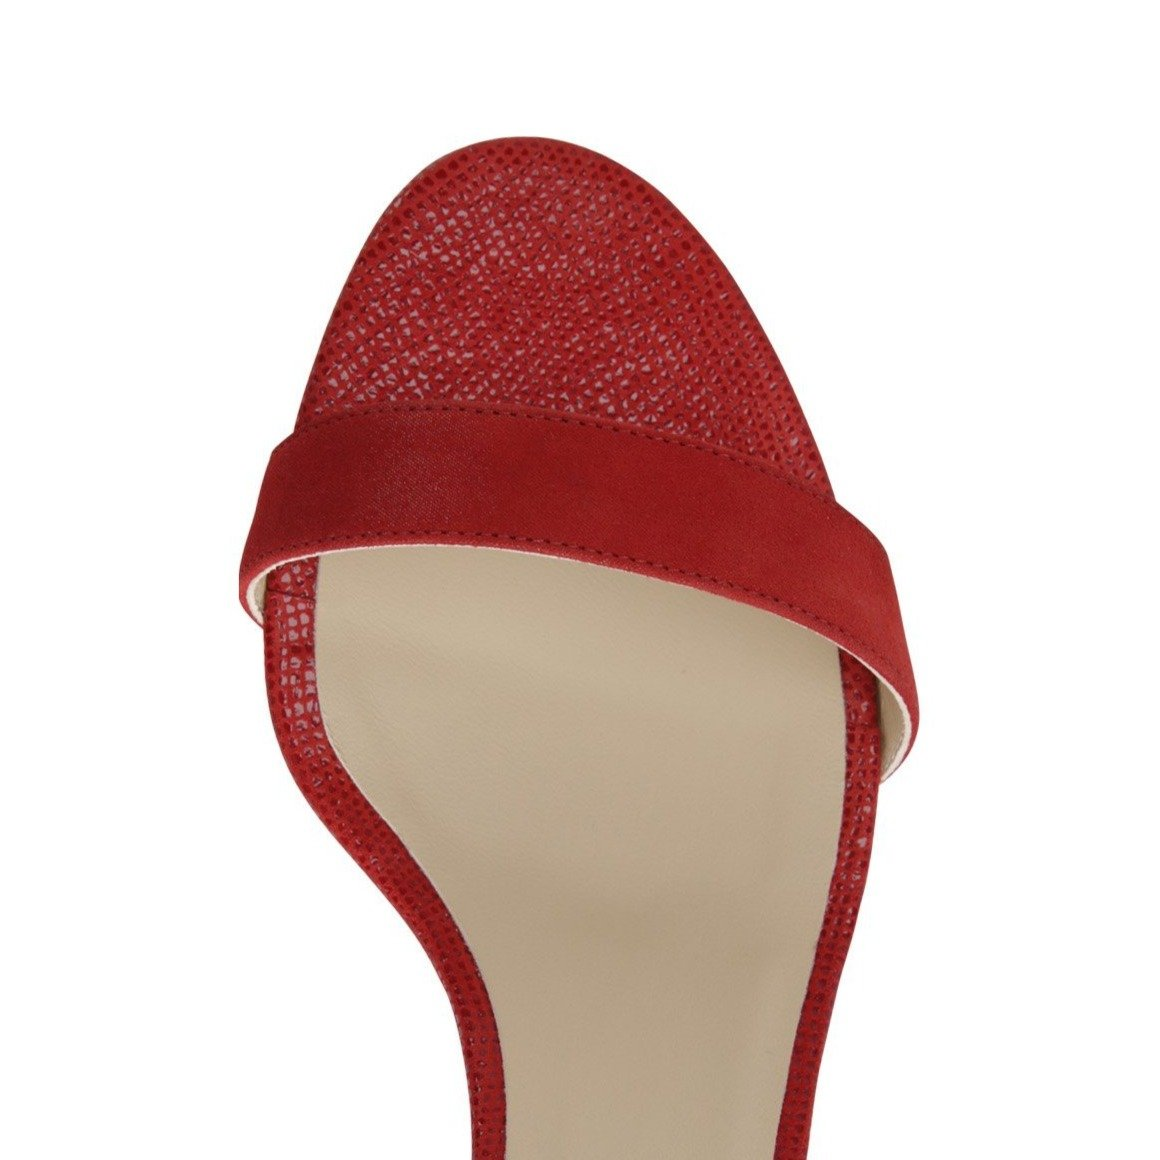 SAVONA - Hydra + Karung Rosso, VIAJIYU - Women's Hand Made Sustainable Luxury Shoes. Made in Italy. Made to Order.